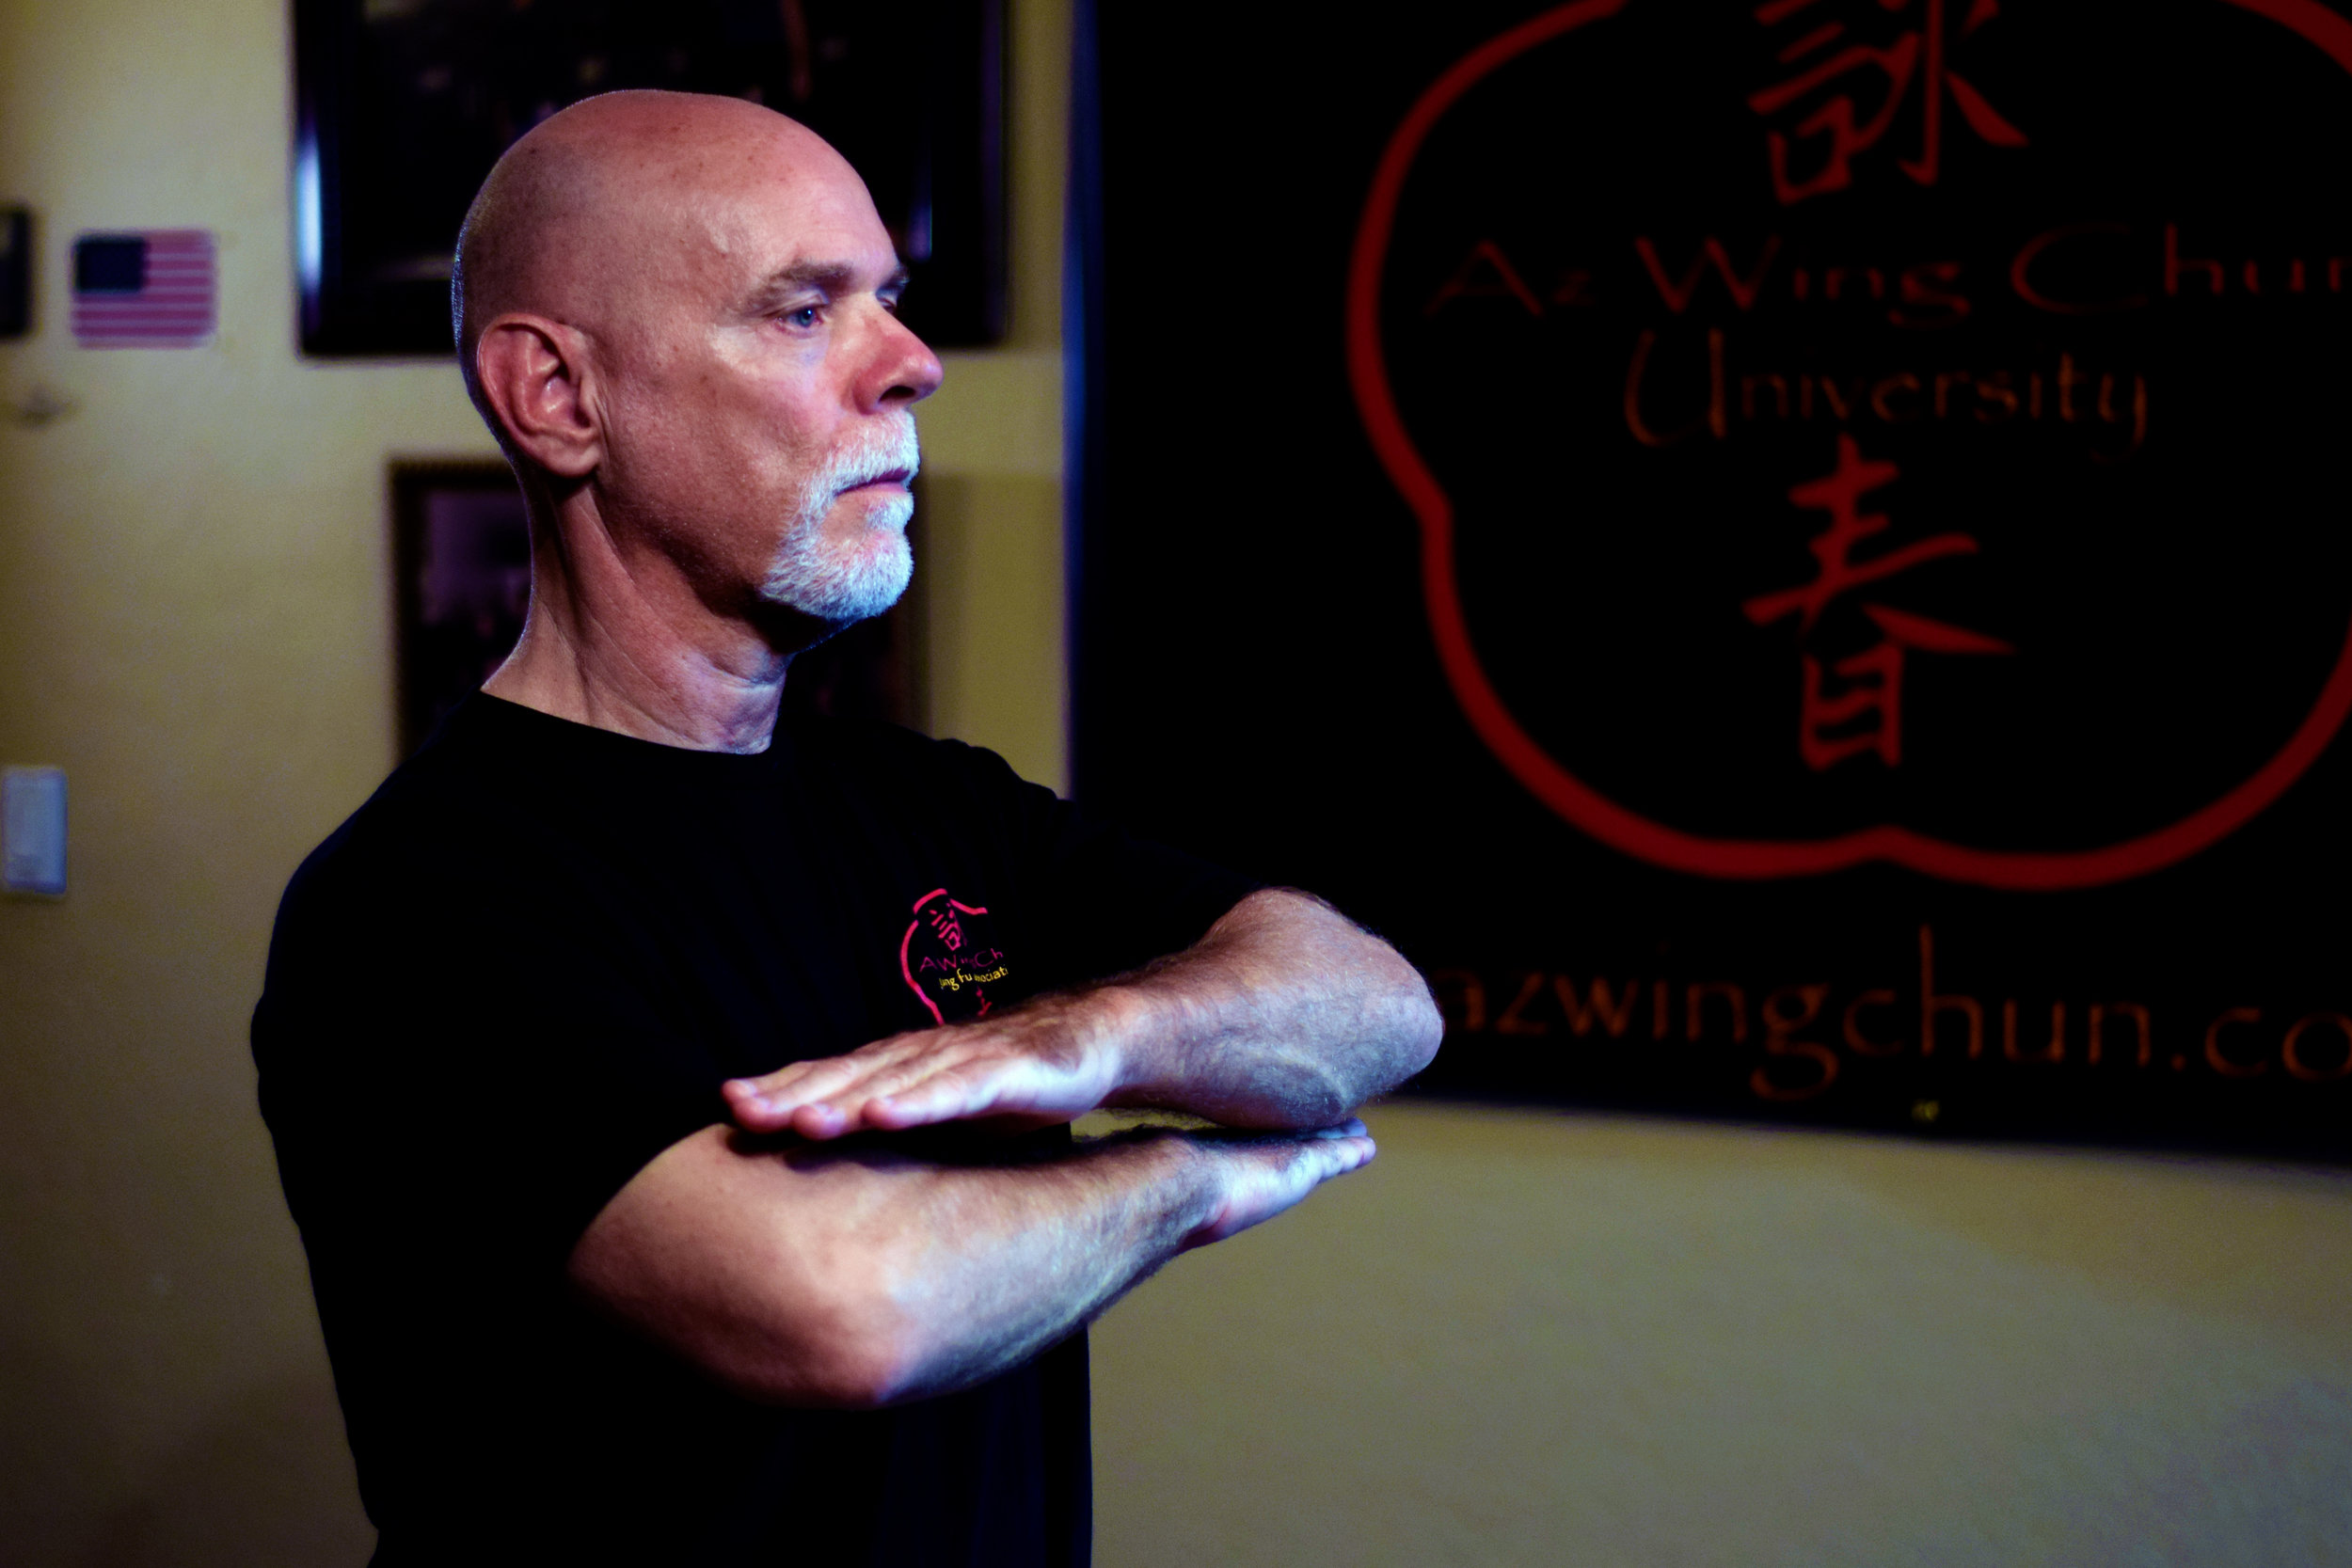 About - Sifu Brian Tufts